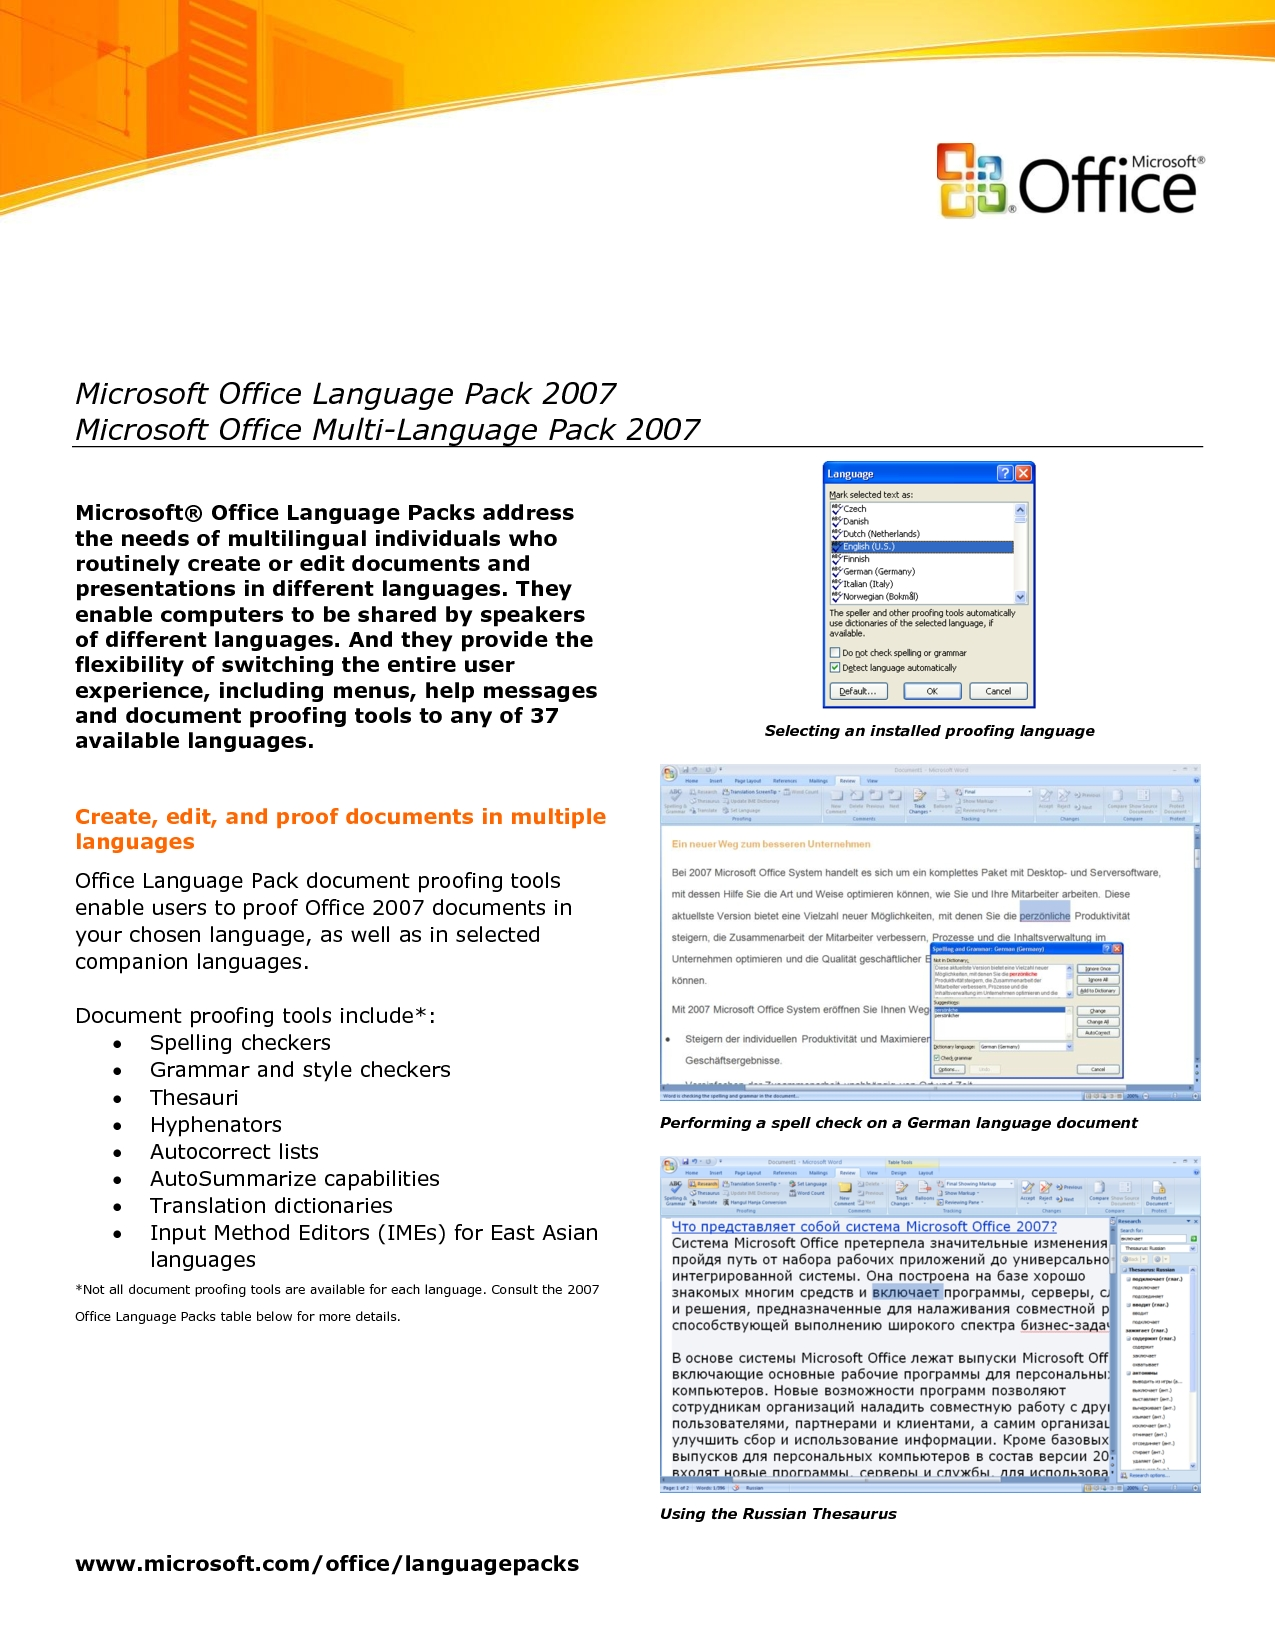 office invoice templates best photos of microsoft office 2007 invoice template invoice 1275 X 1650